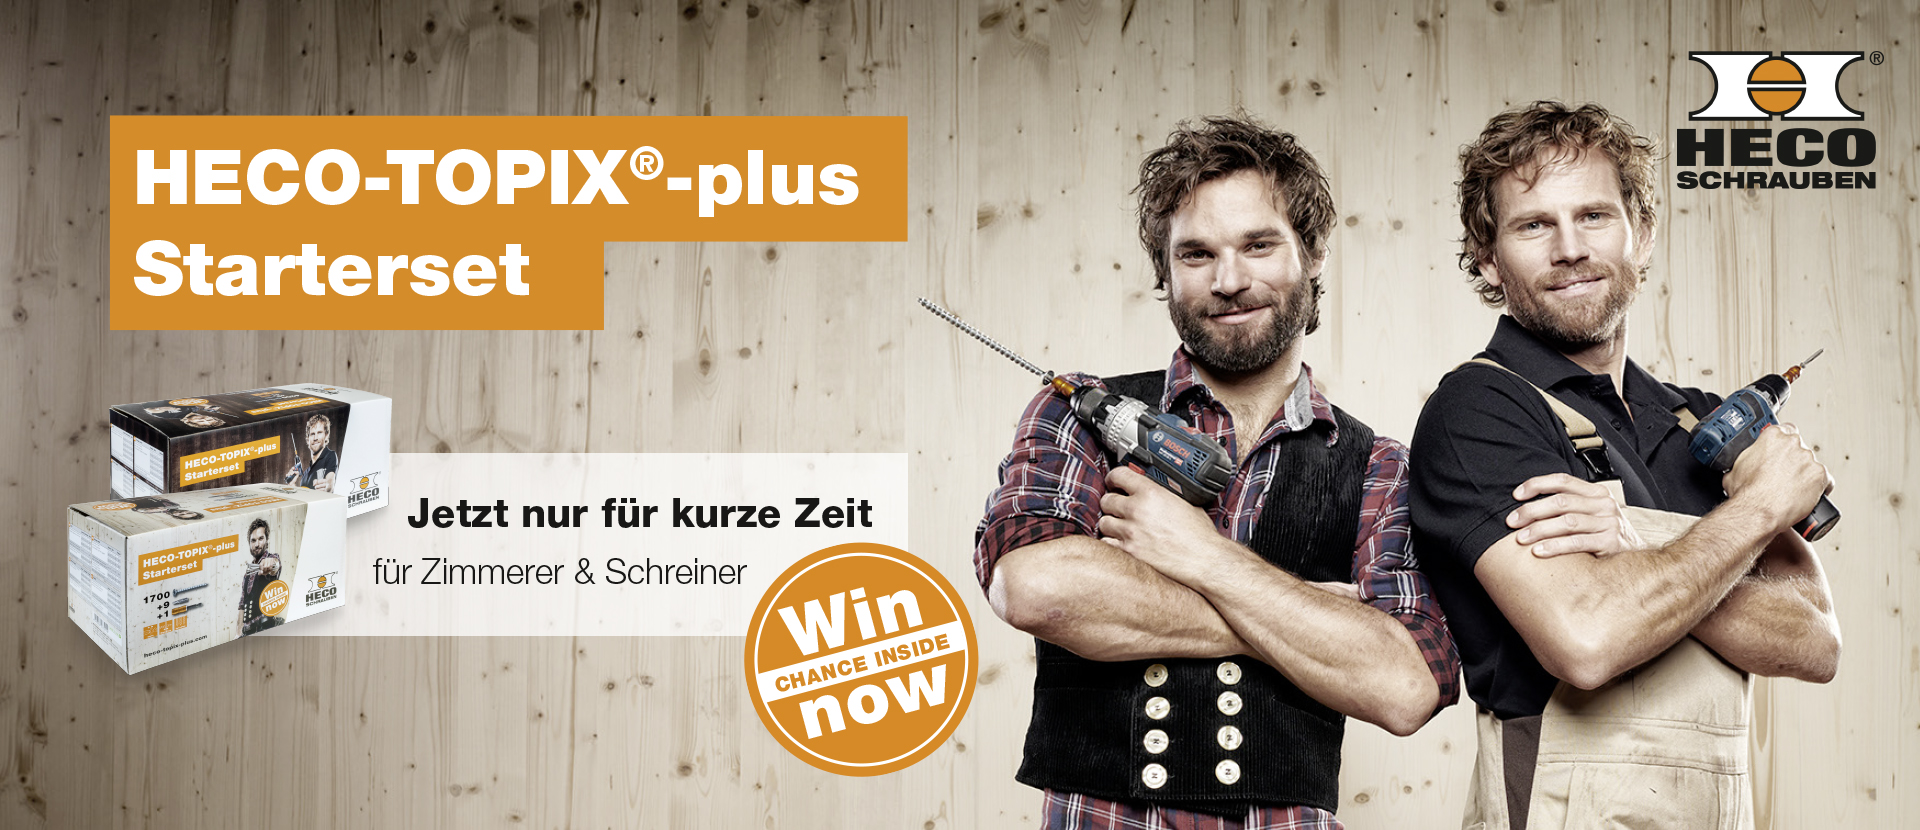 Wiha Topix Plus Startersets